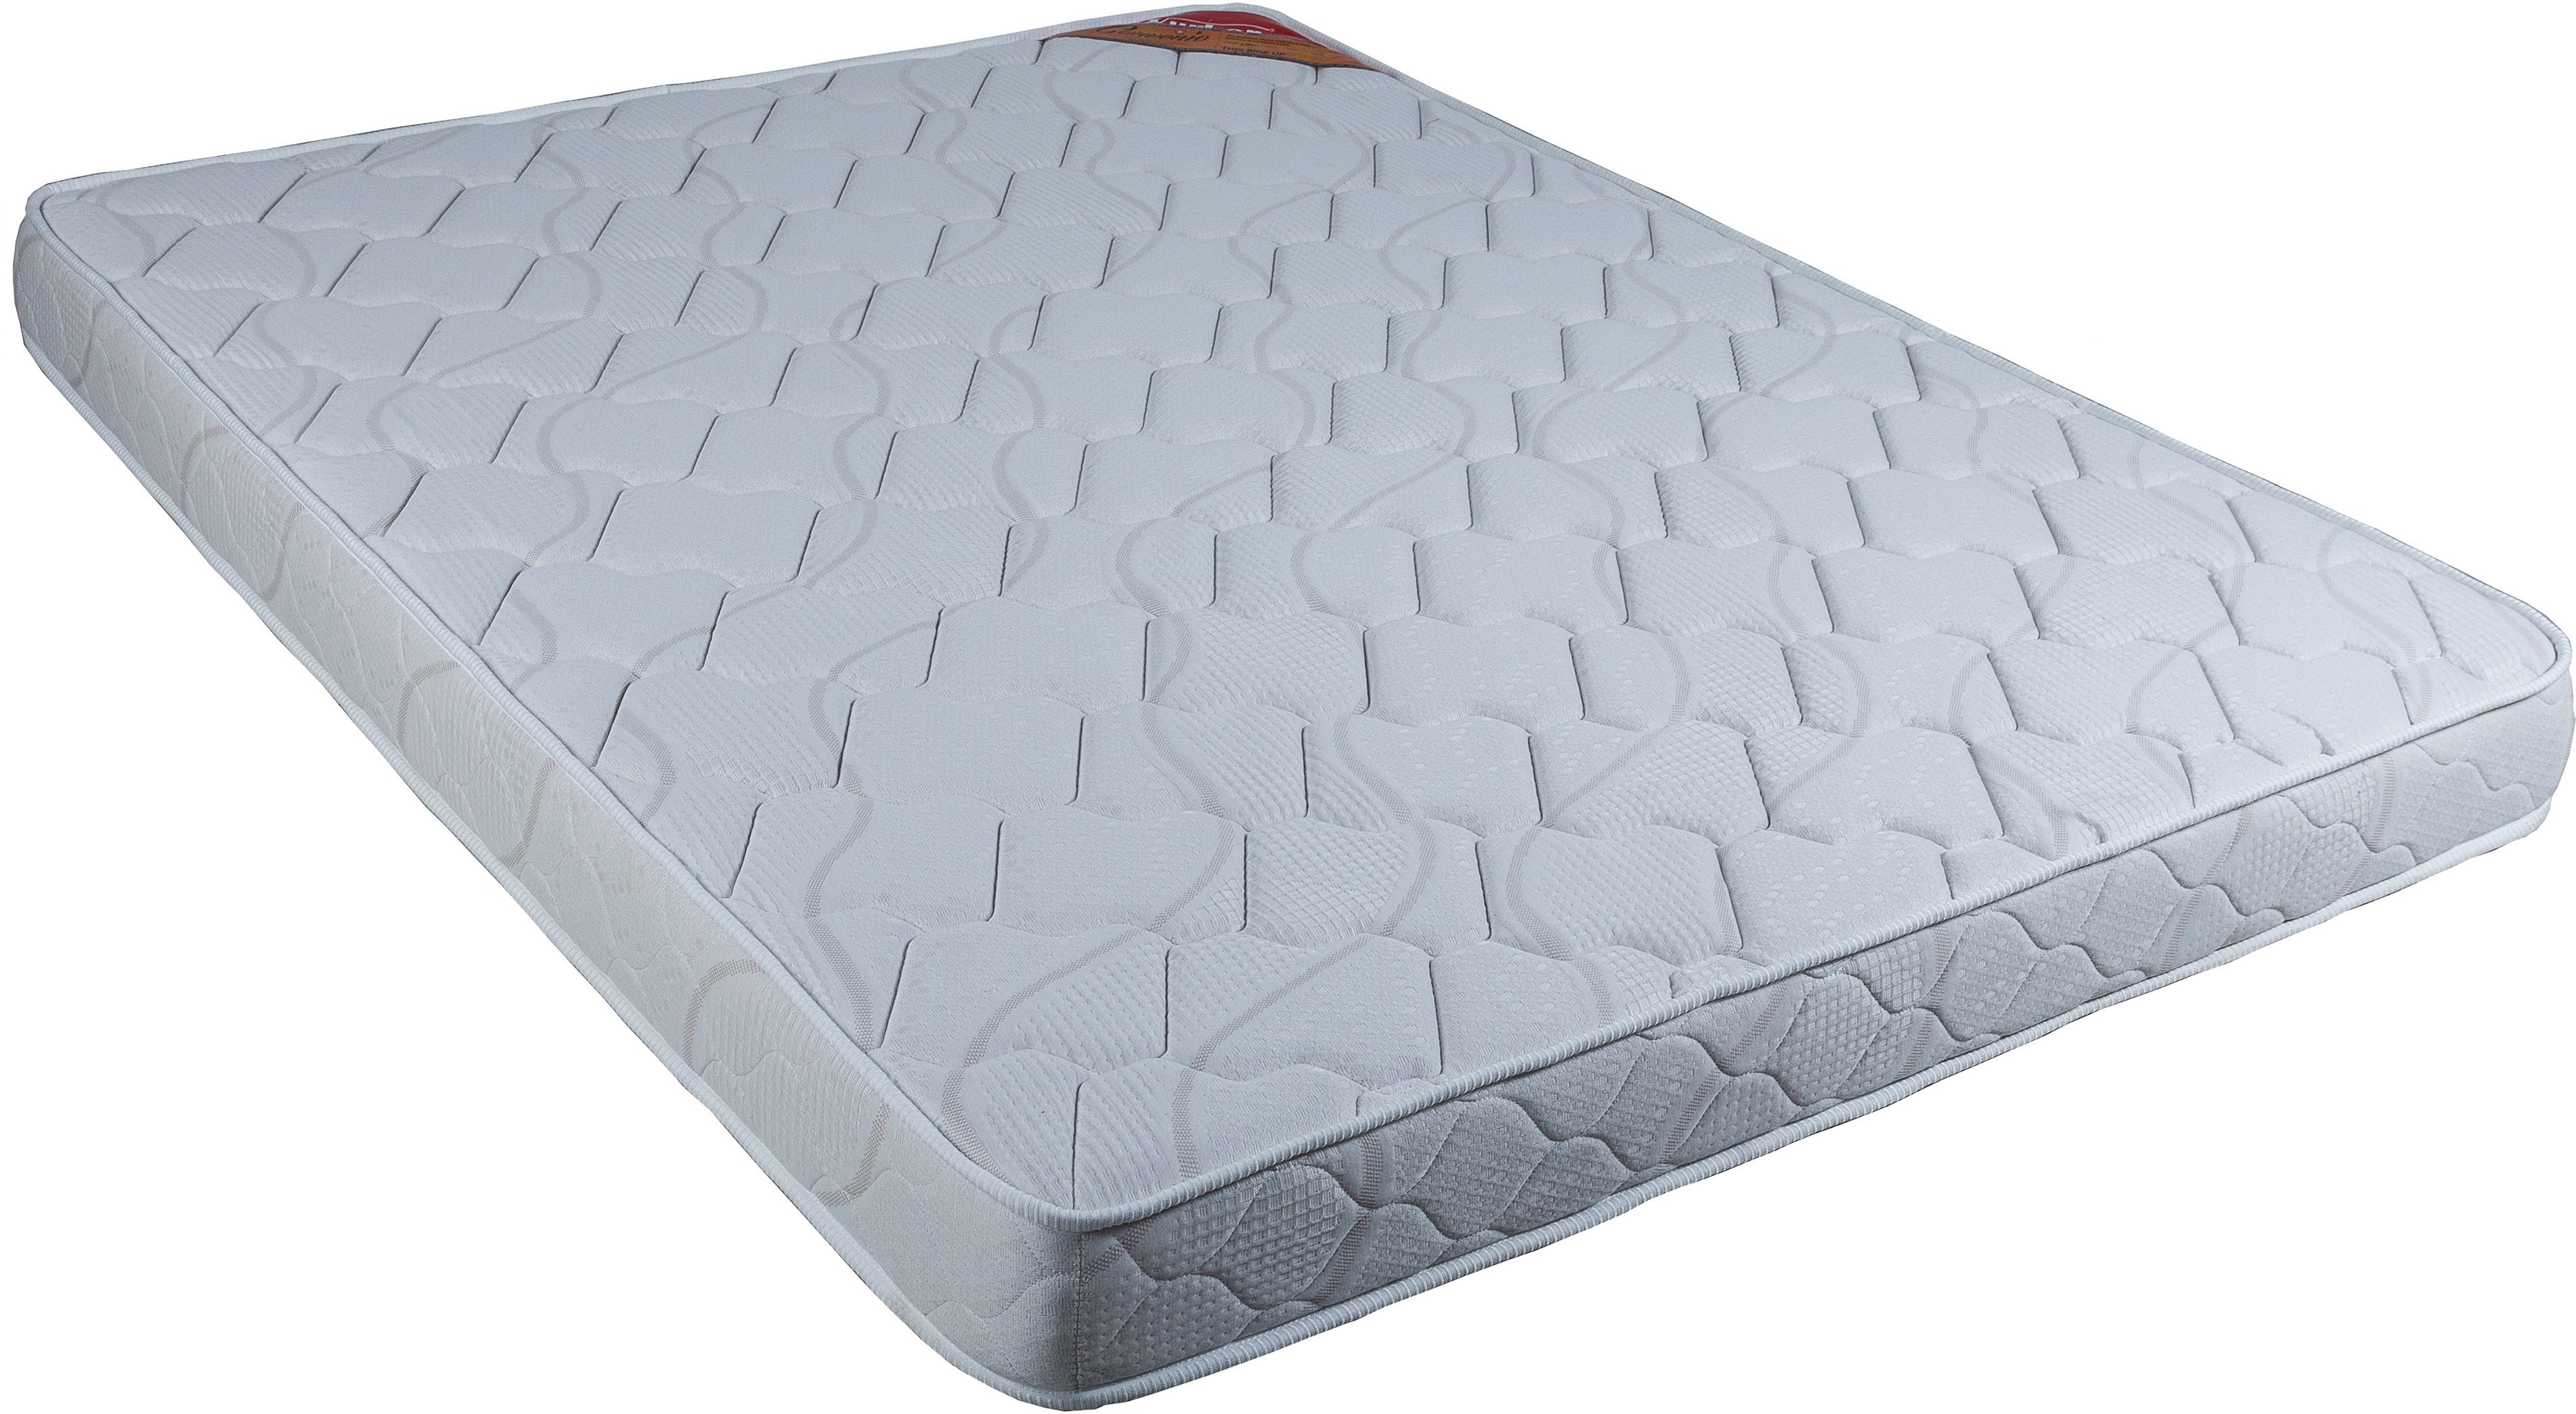 View Kurlon Convenio 4 inch King Bonded Foam Mattress Price Online(Kurlon)